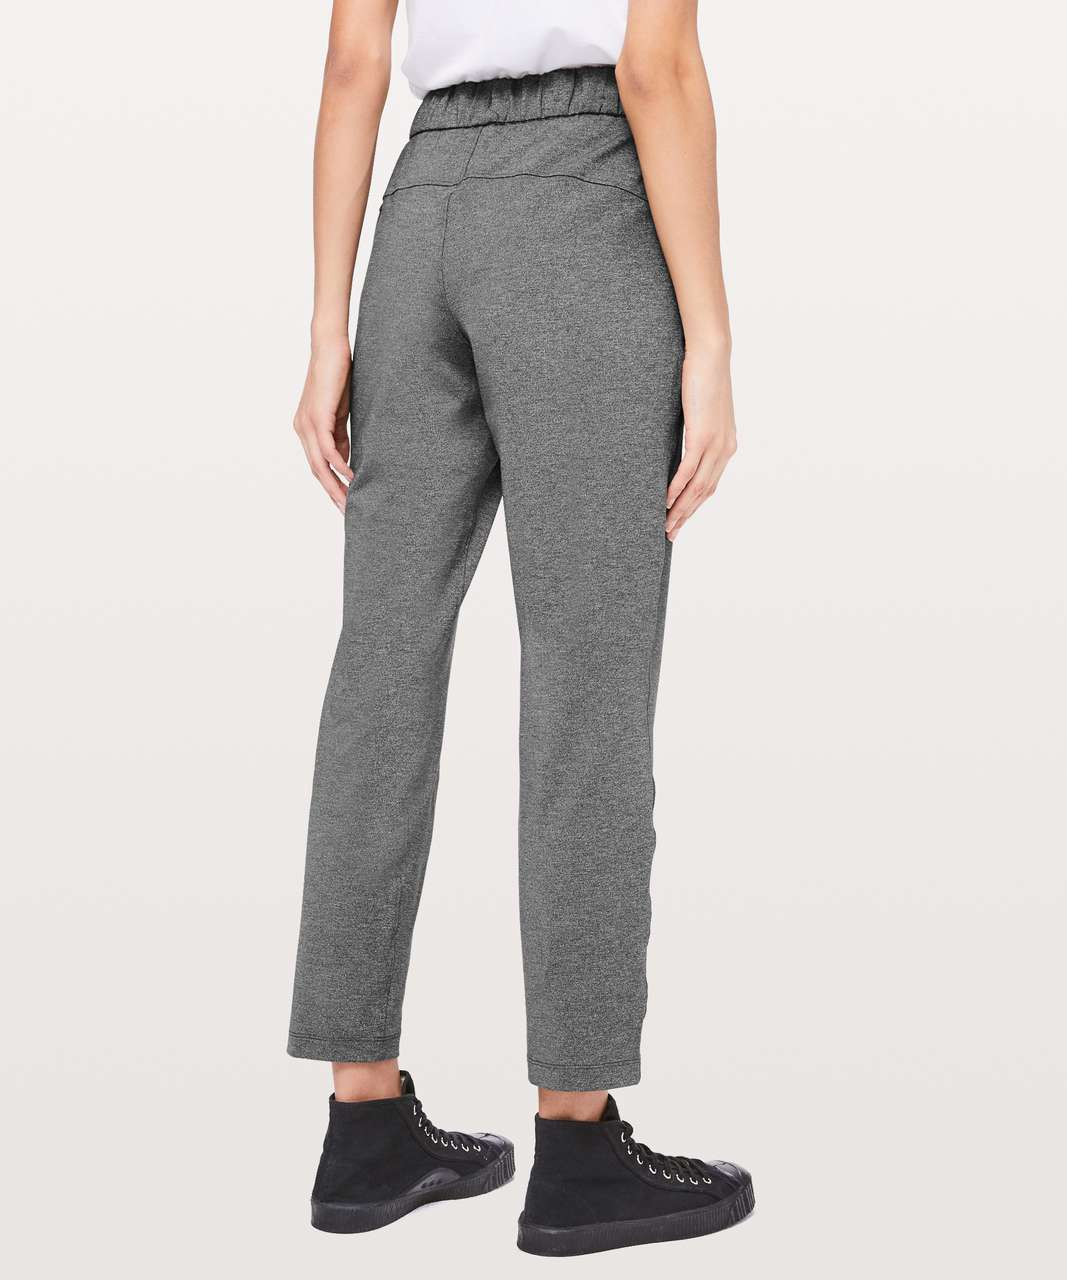 "Lululemon On The Fly Pant *27"" - Heathered Black"